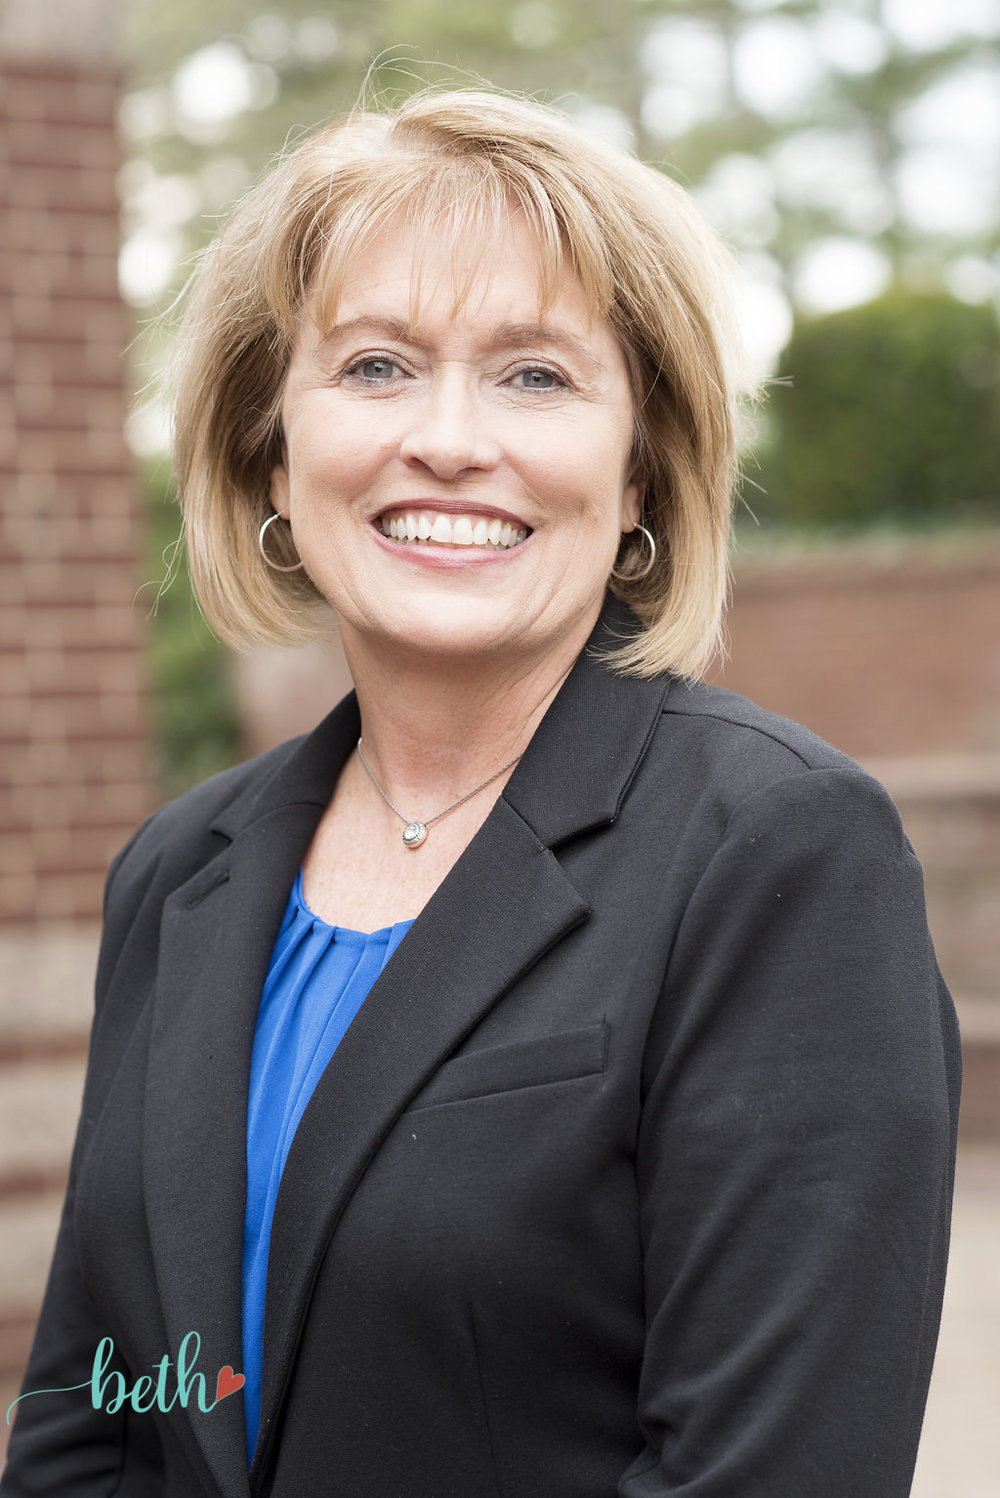 Ruth Ann Suttle, Custom Benefits Solutions' Lead Enrollment Specialist